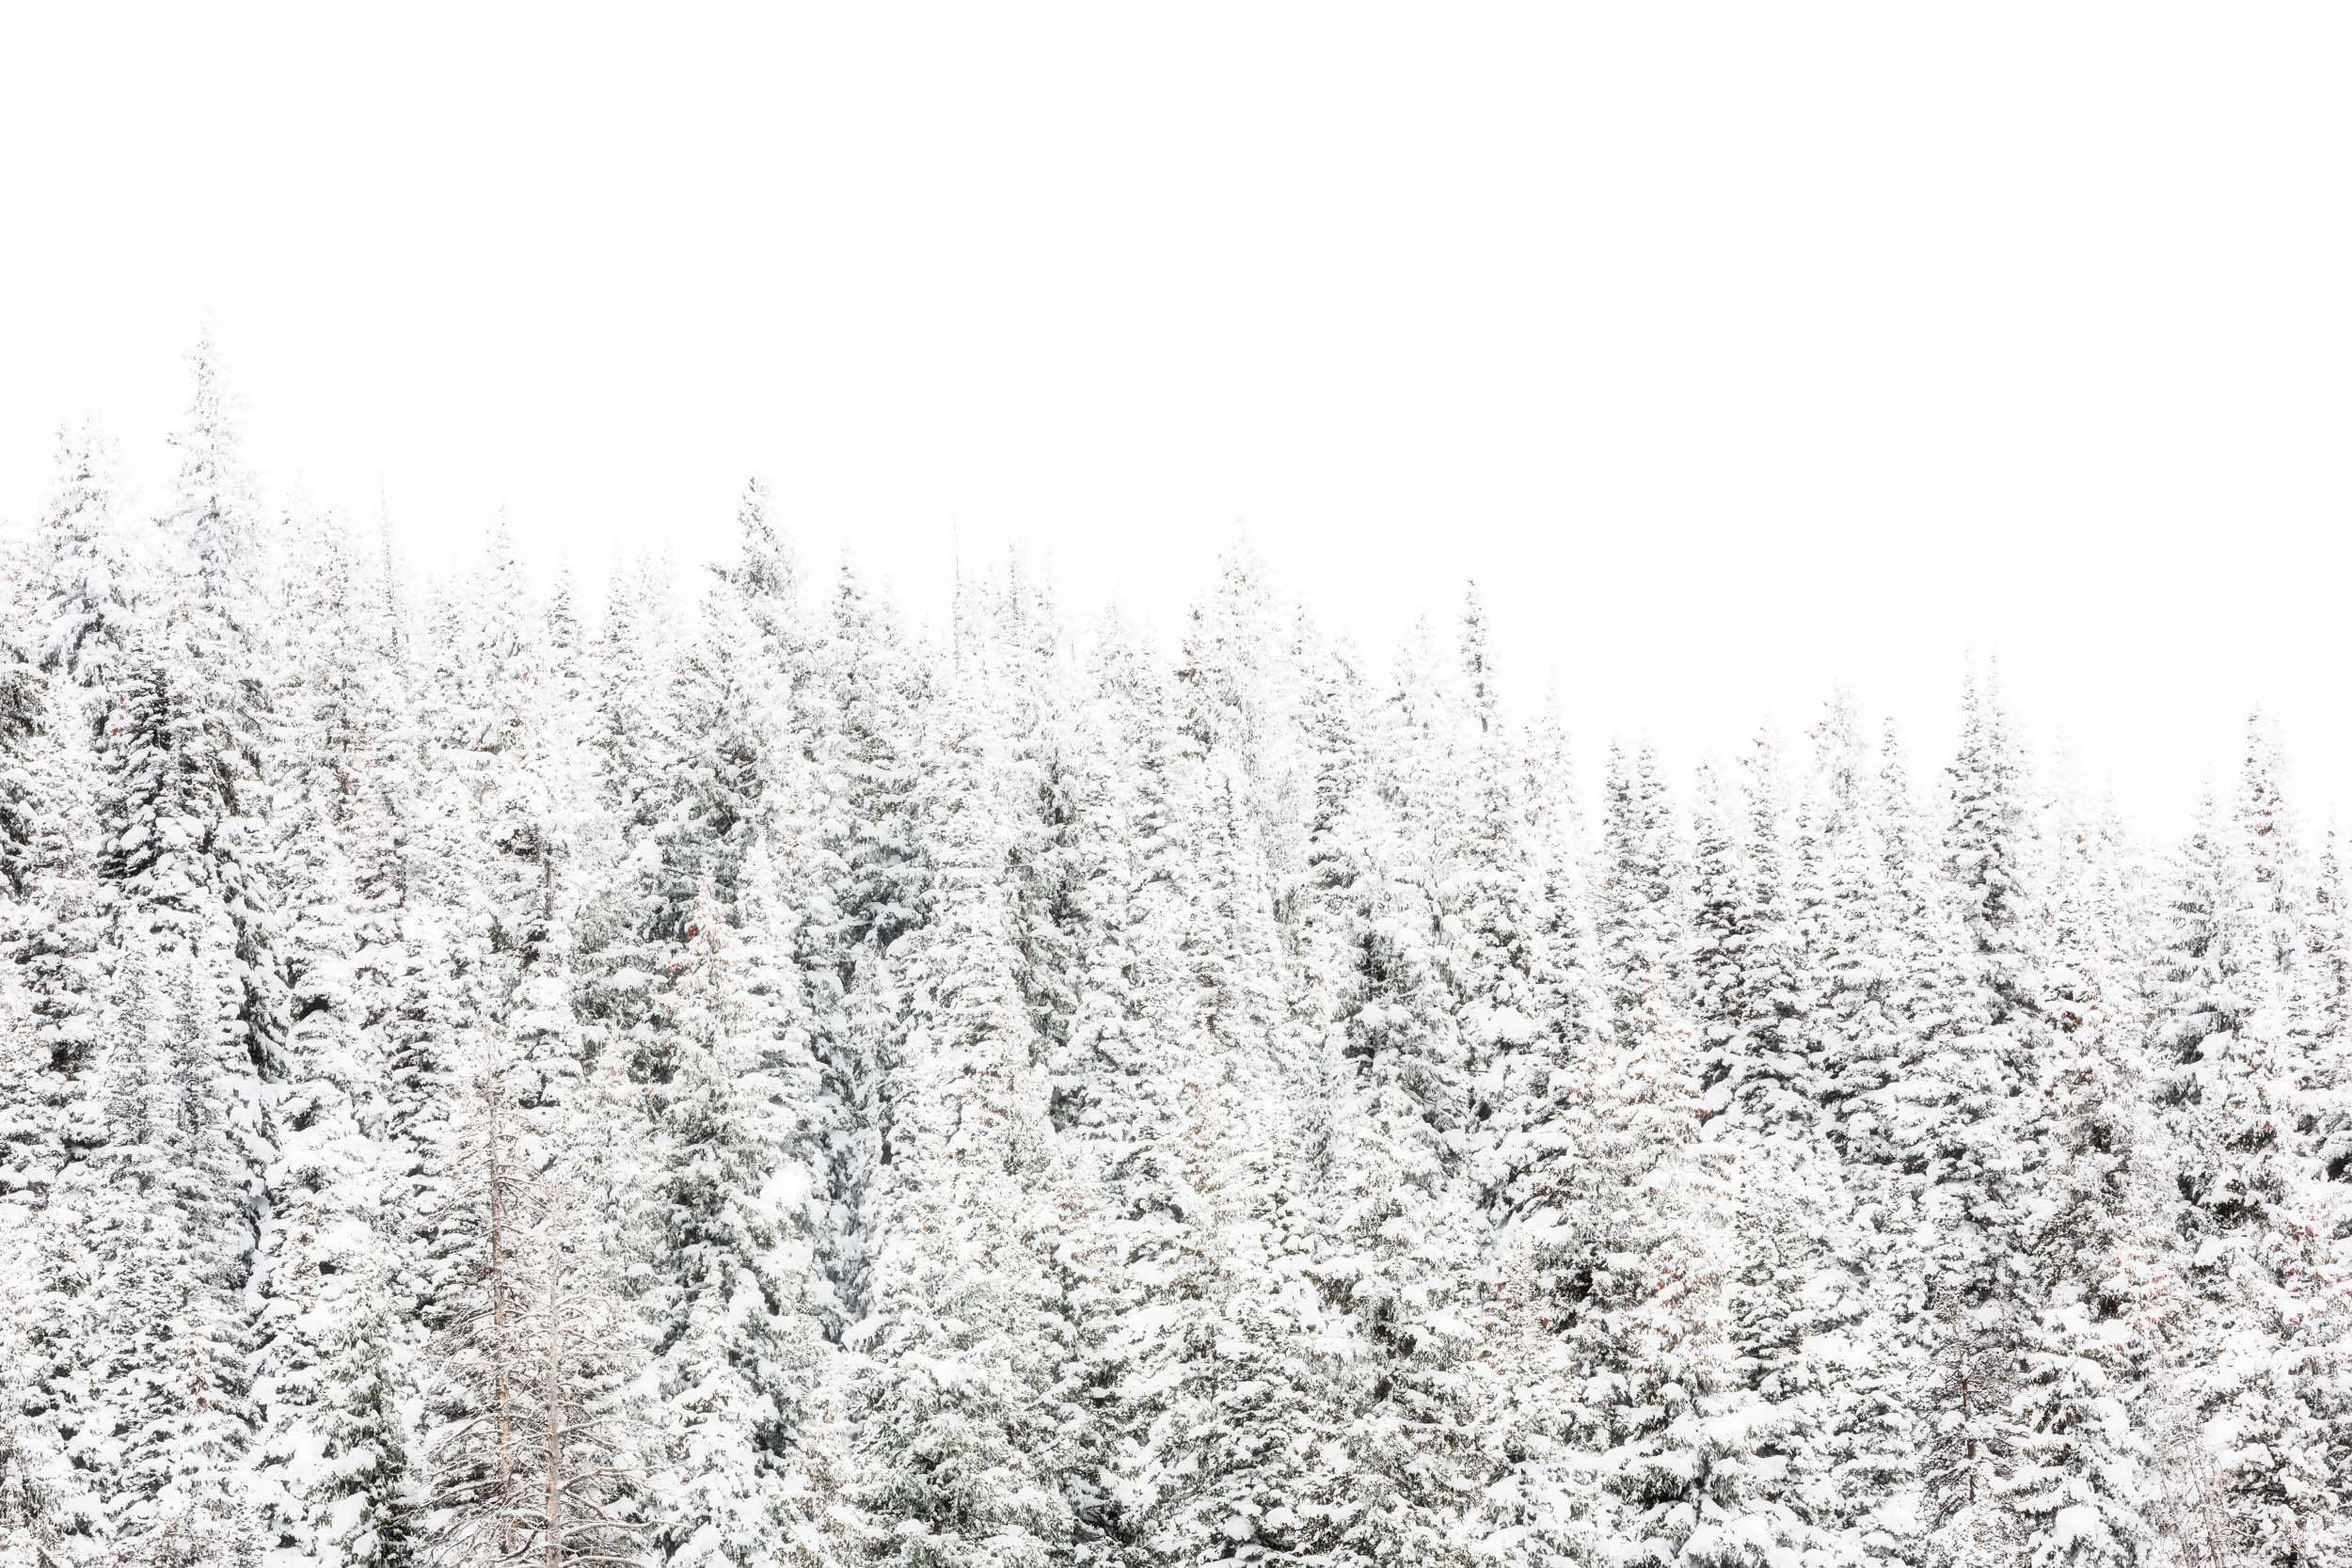 A stand of snowy trees on a pass near Steamboat Springs in Colorado's Rocky Mountains. The winter scene comes as the state has been experiencing a better snow year in 2018/19 than the year before, when the snowpack was at record-low levels in parts of the state and ski resorts were struggling.